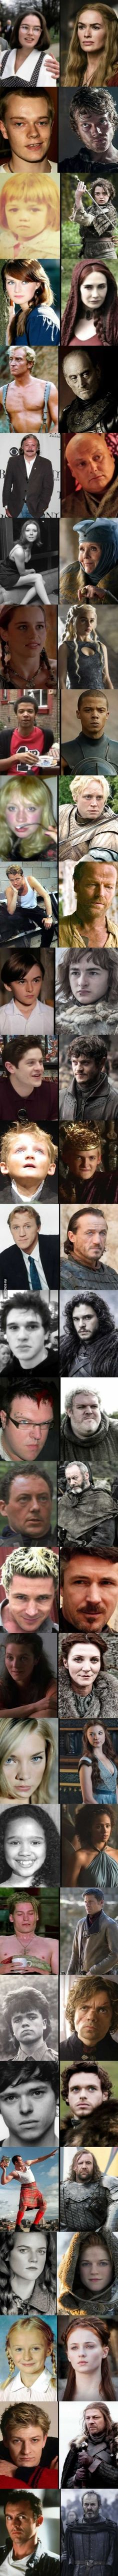 Game of Thrones stars when they were younger.